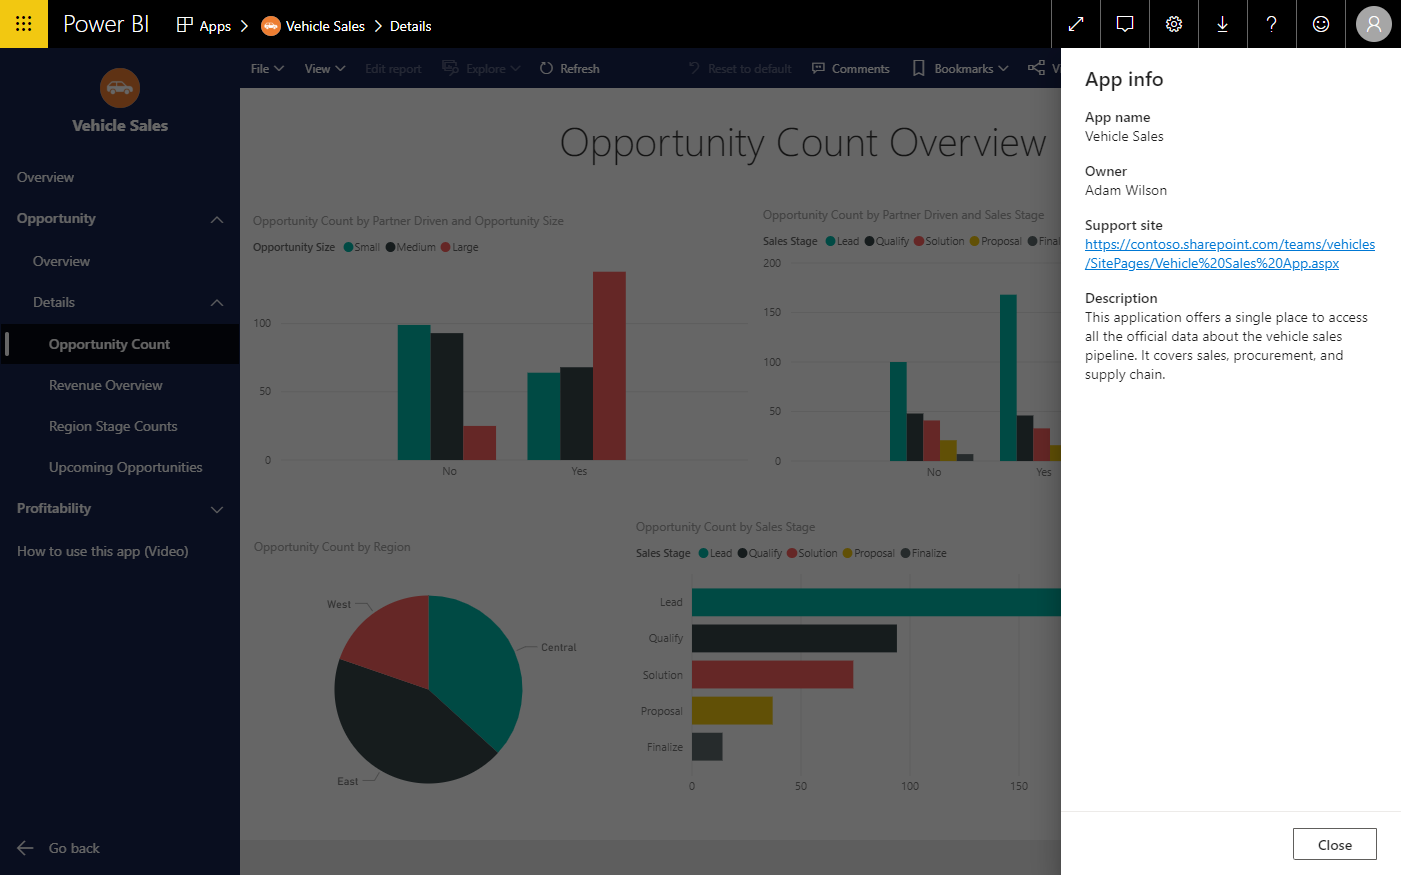 Image of the app info panel showing Power BI app information.